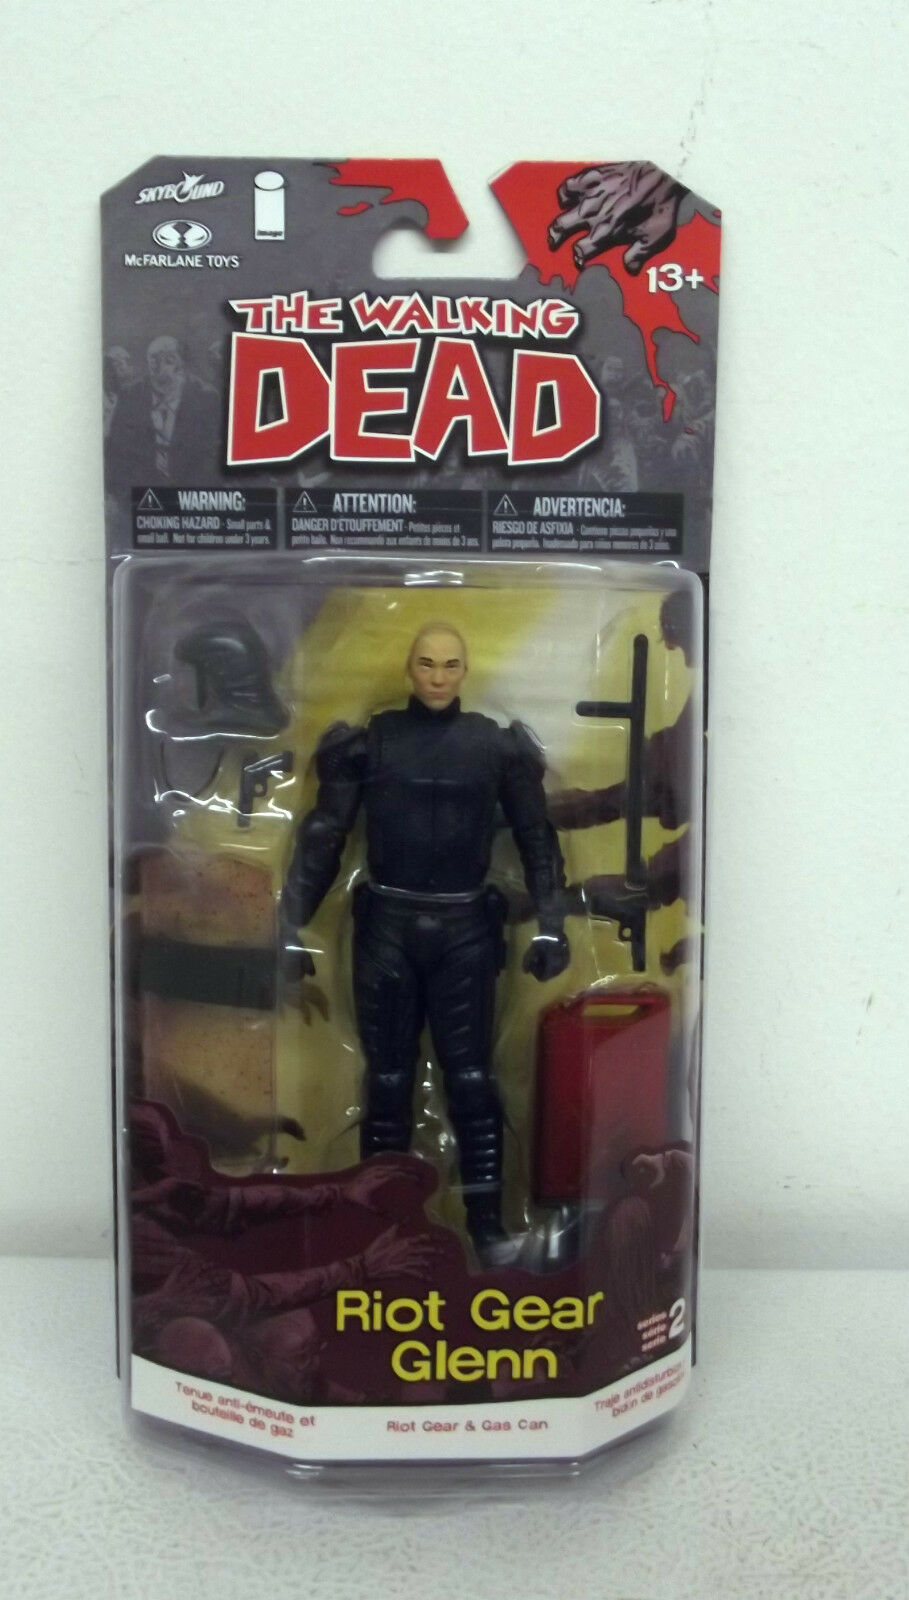 2013 McFarlane Toys The Walking Dead Series 2 Riot Gear Glenn Action Figure TWD-08